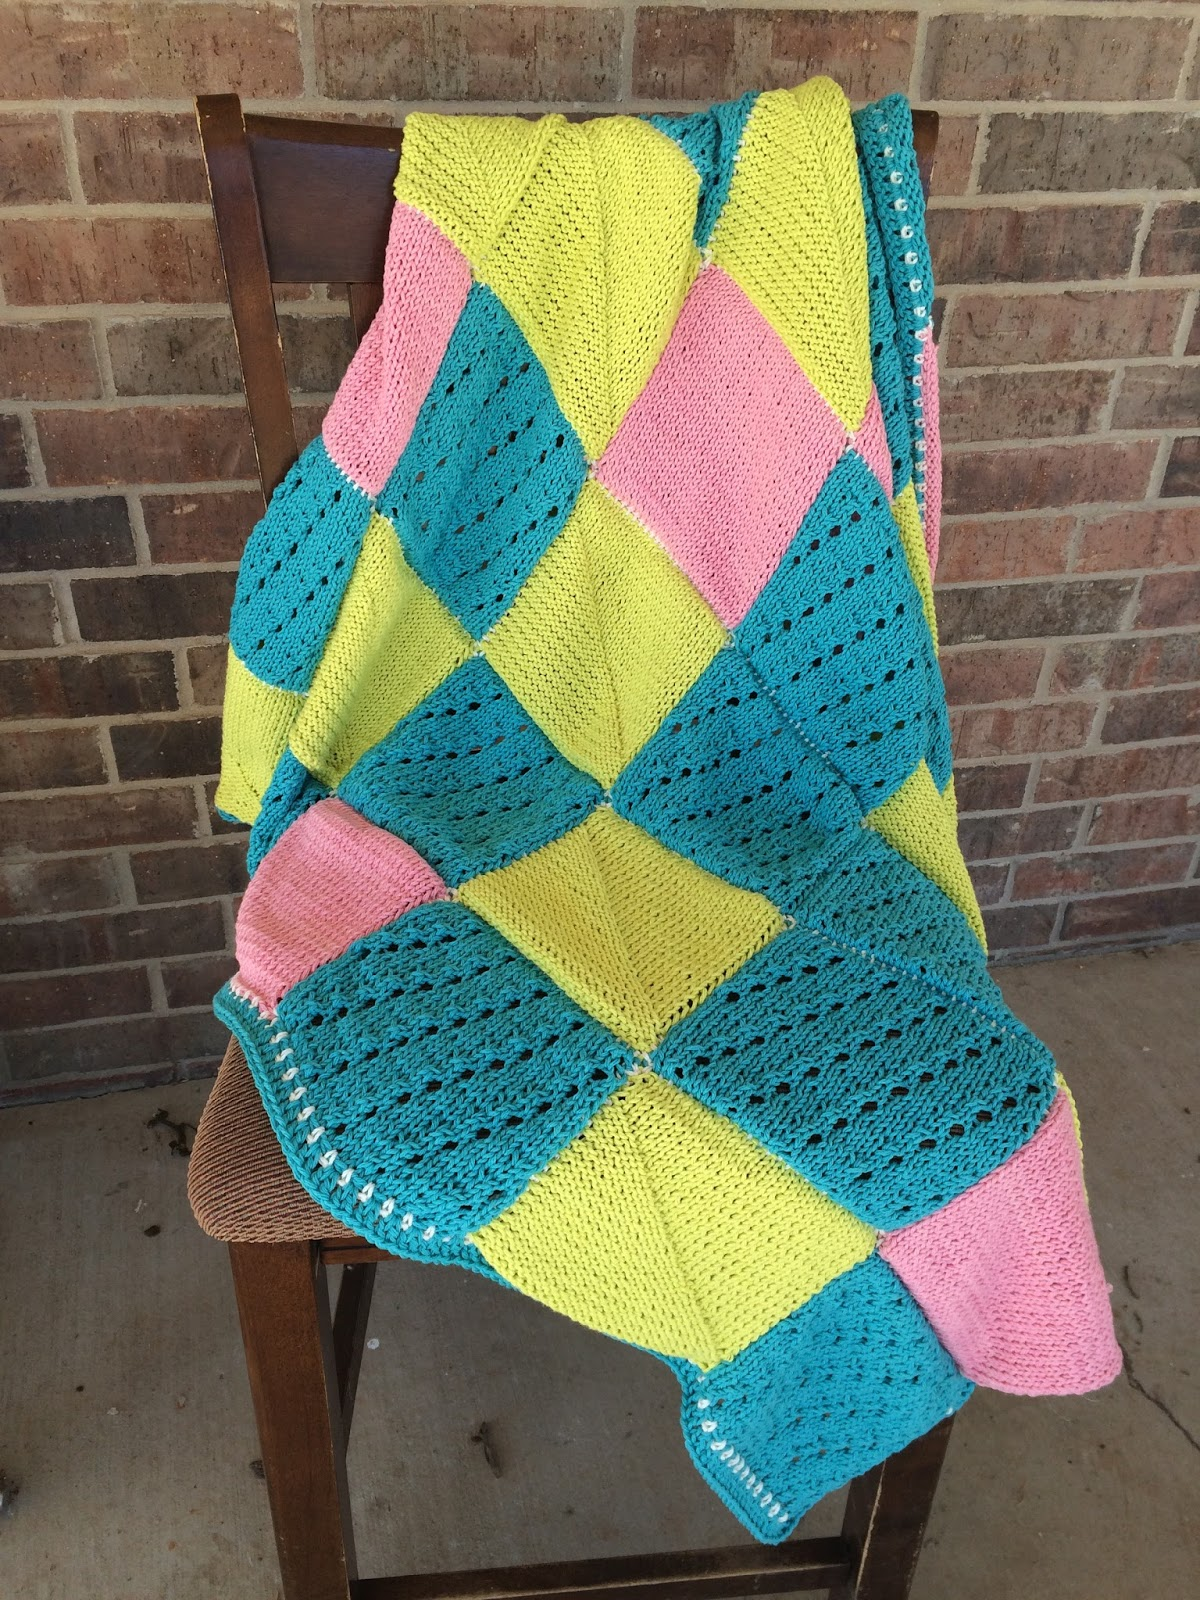 First Time S A Charm Knit Blanket Textured Square